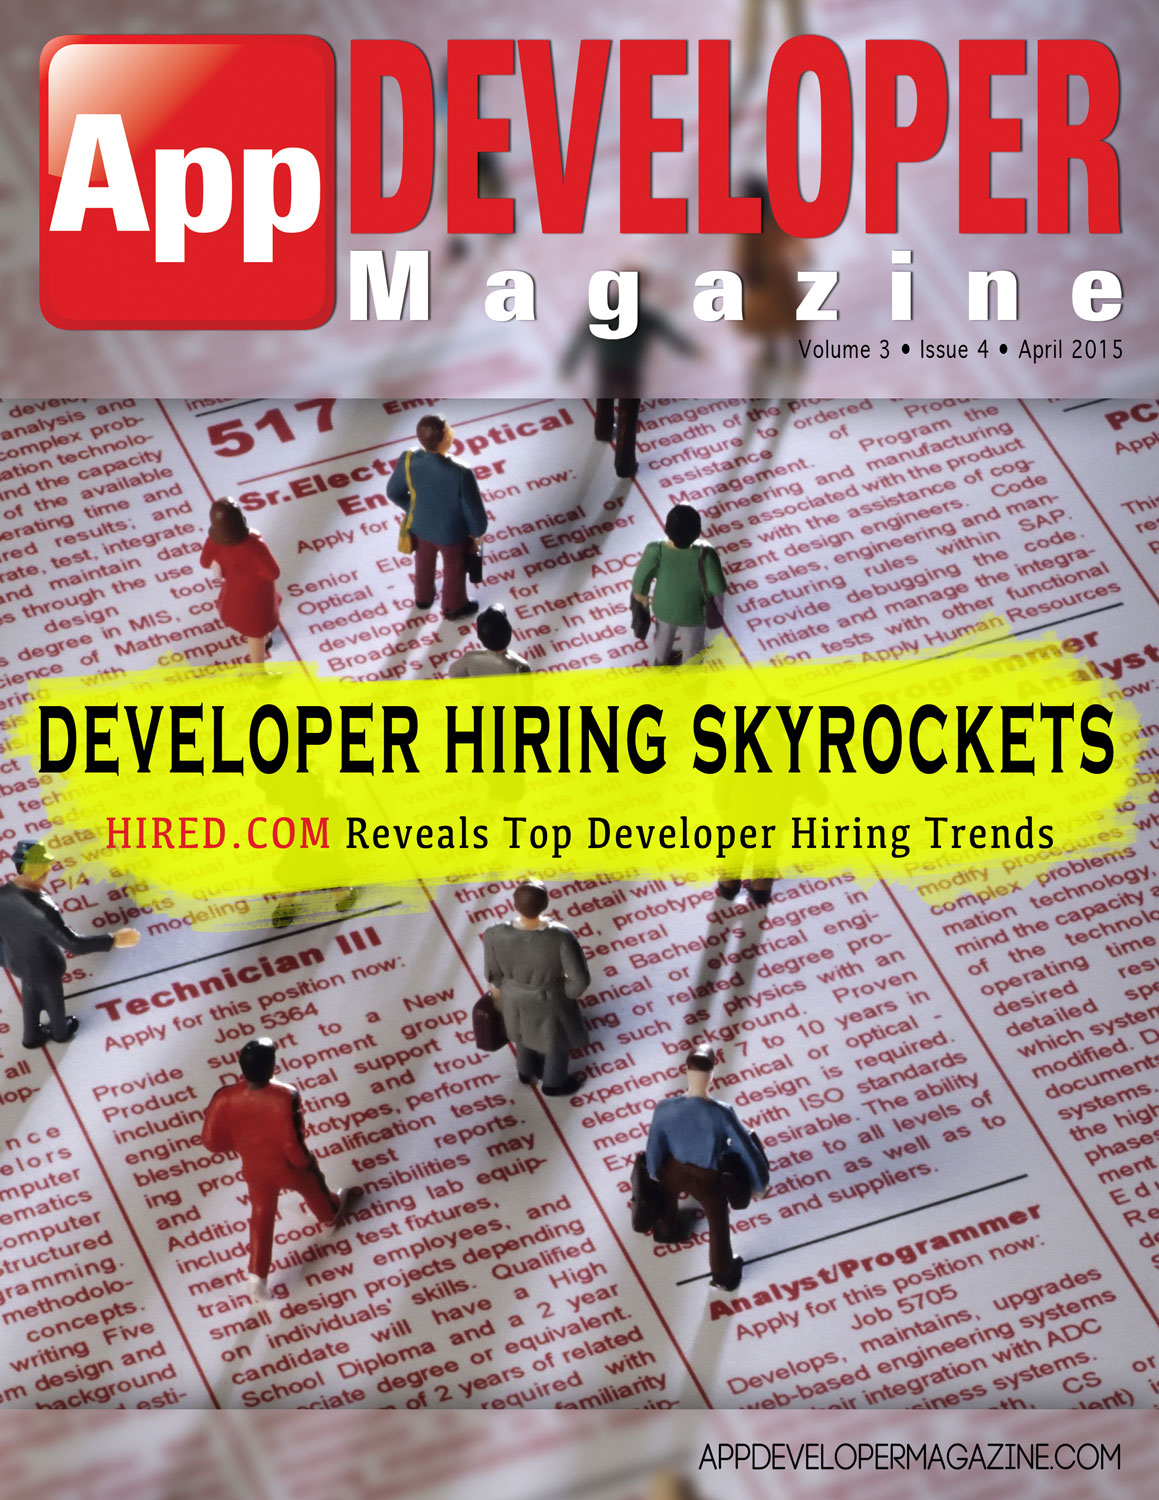 Read App Developer Magazine April 2015 issue